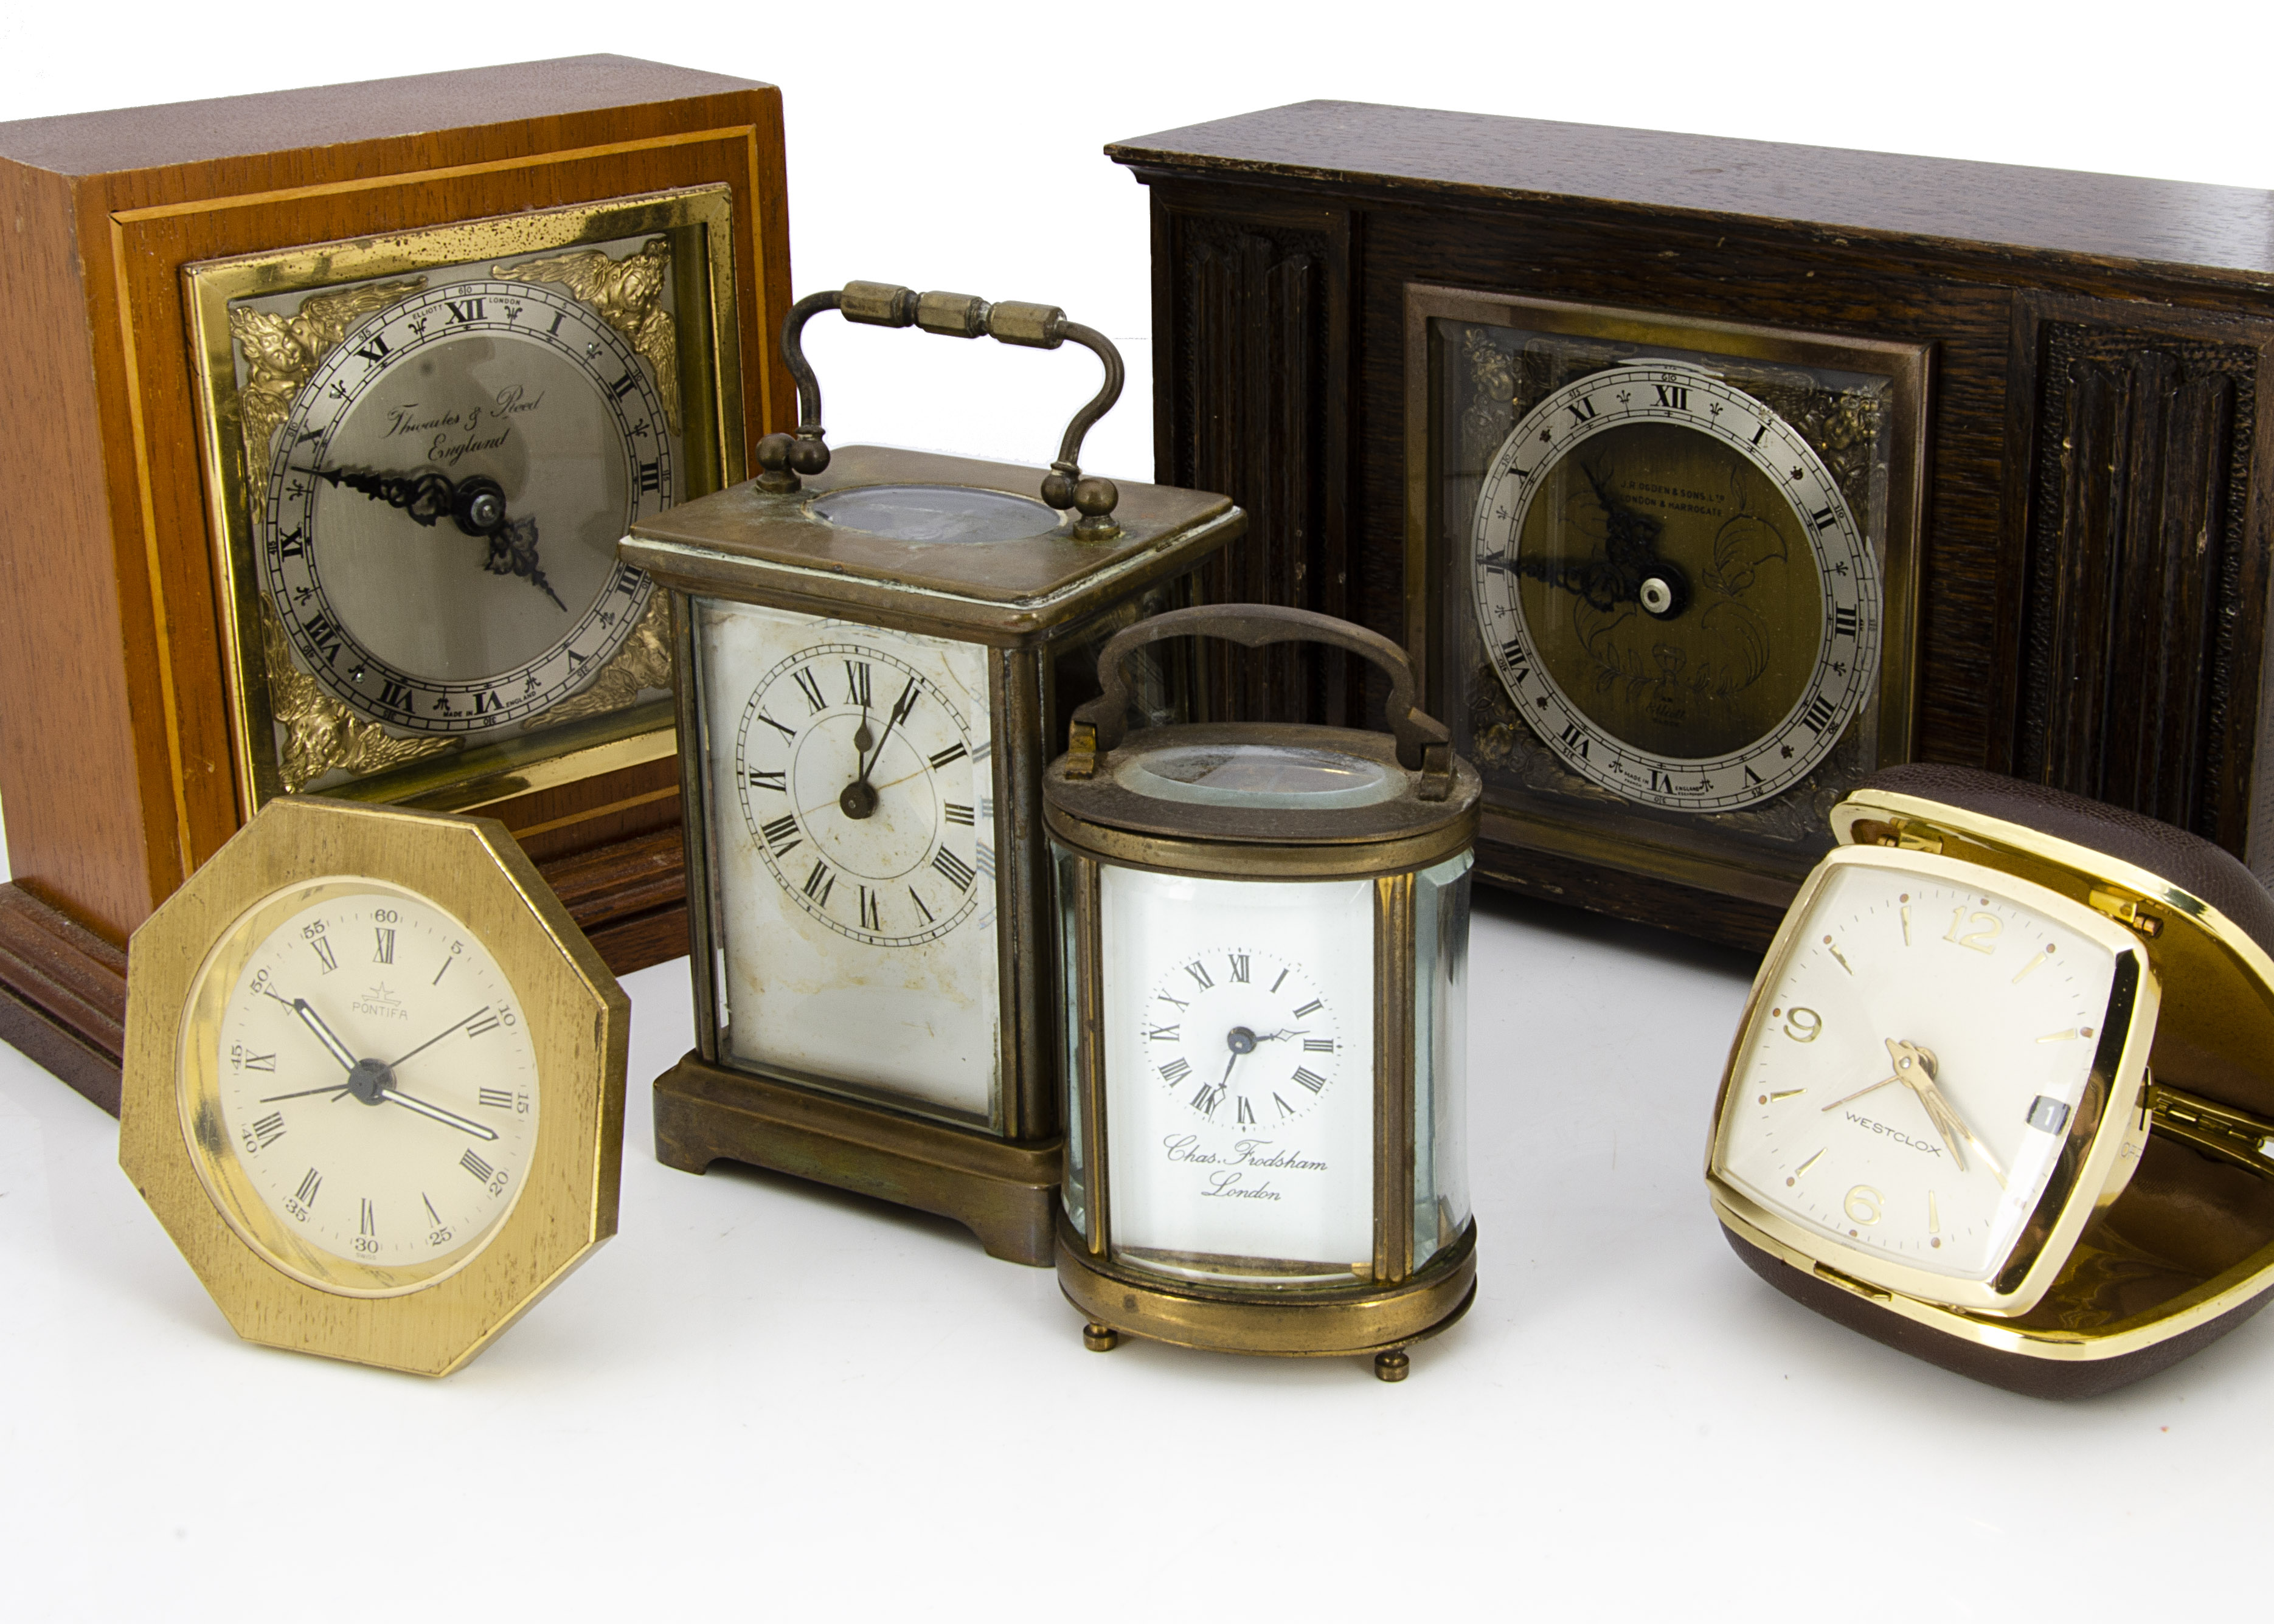 Six vintage and modern timepieces, including a damaged carriage timepiece, a smaller oval carriage